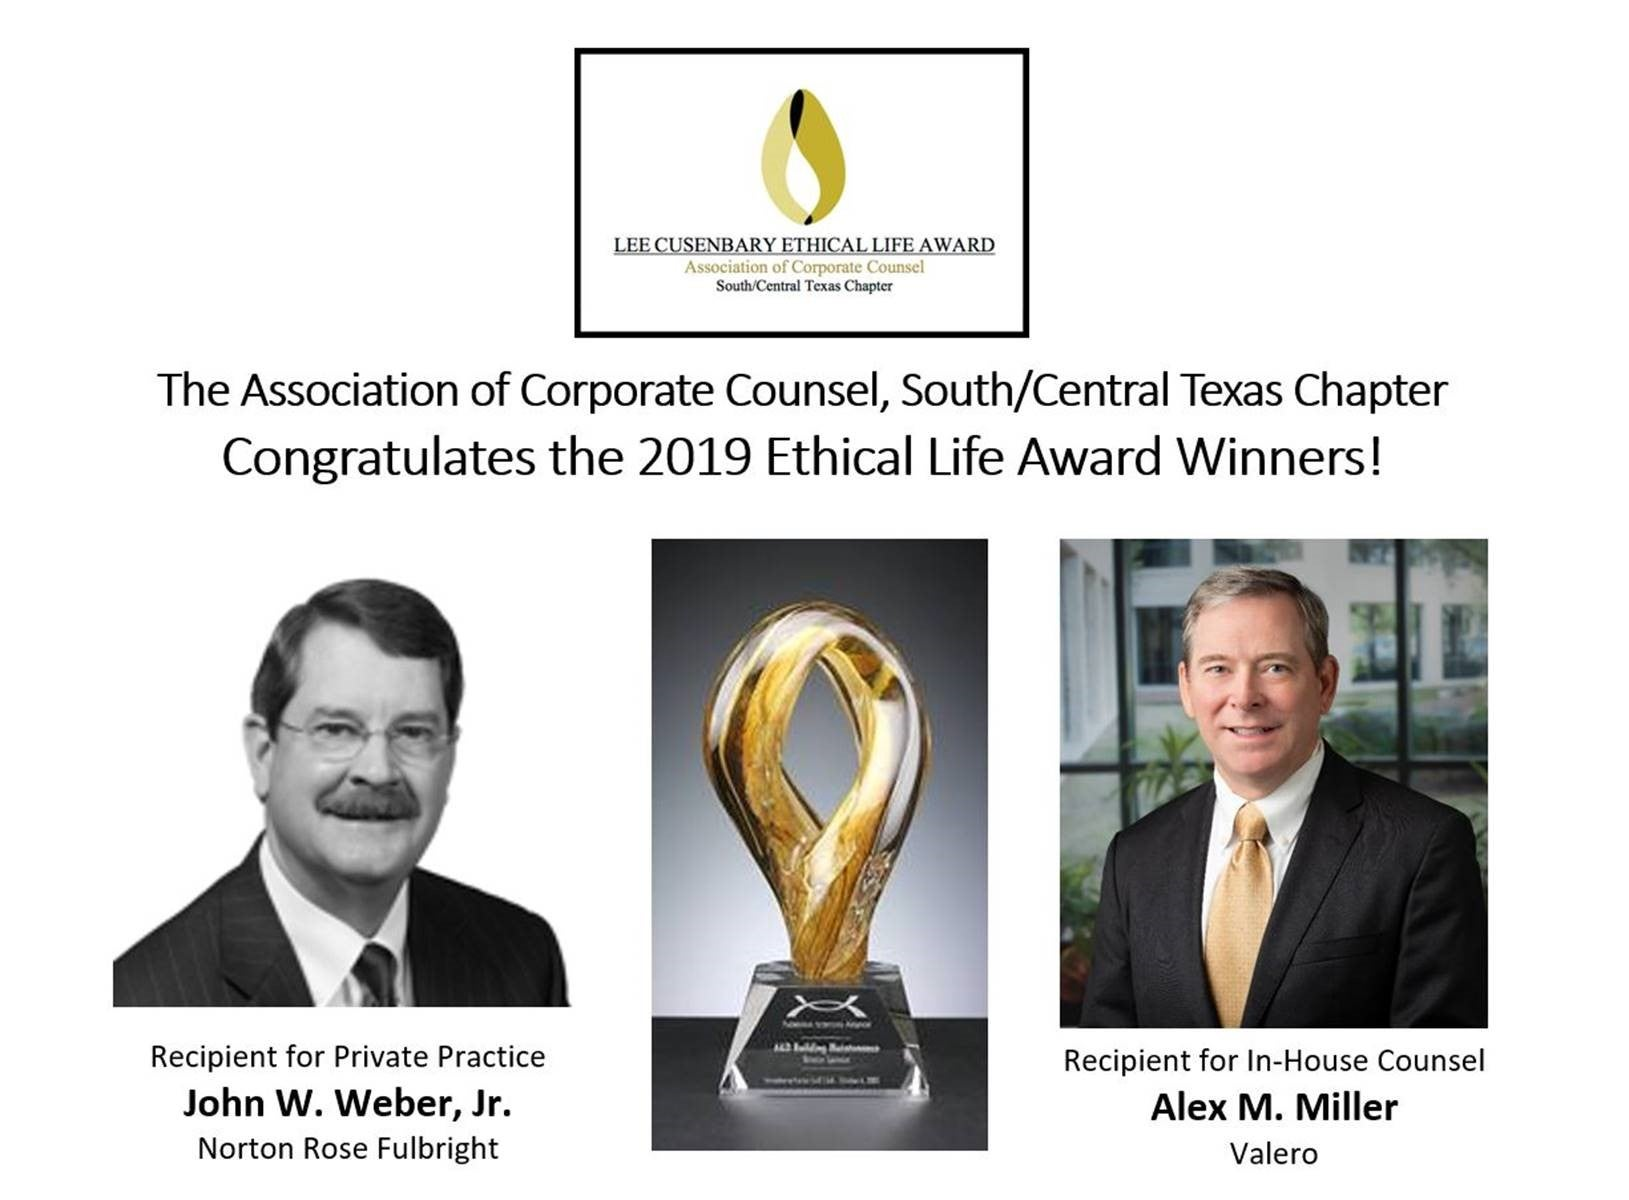 2019 South Central Texas Chapter Ethical Life Award Winners